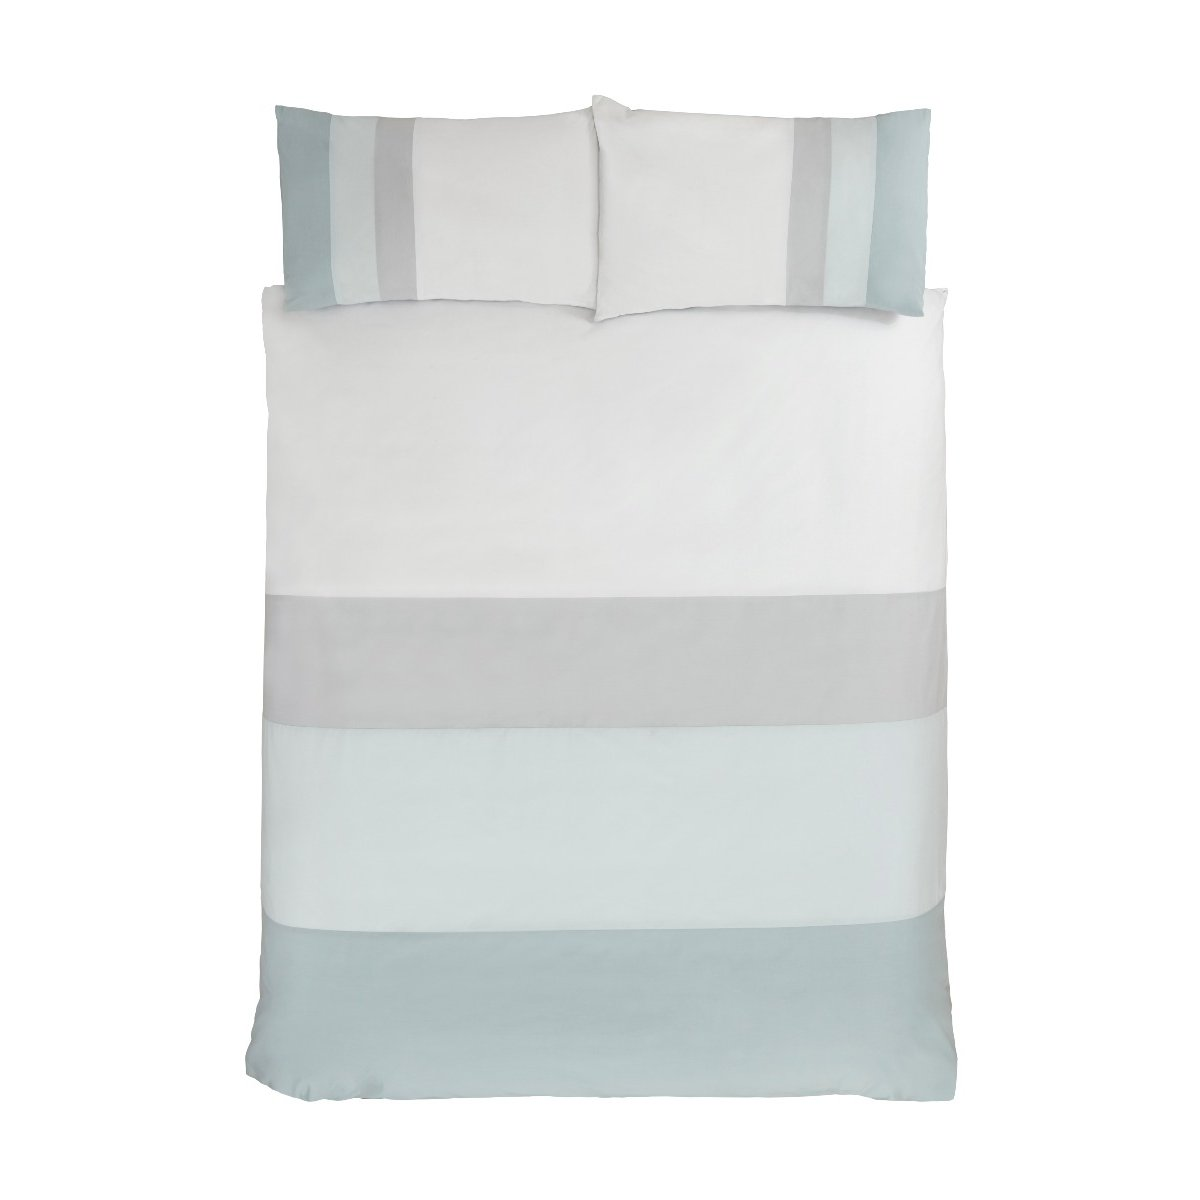 Colour Block Bedding - Reversible Duvet Cover and Pillowcase Set